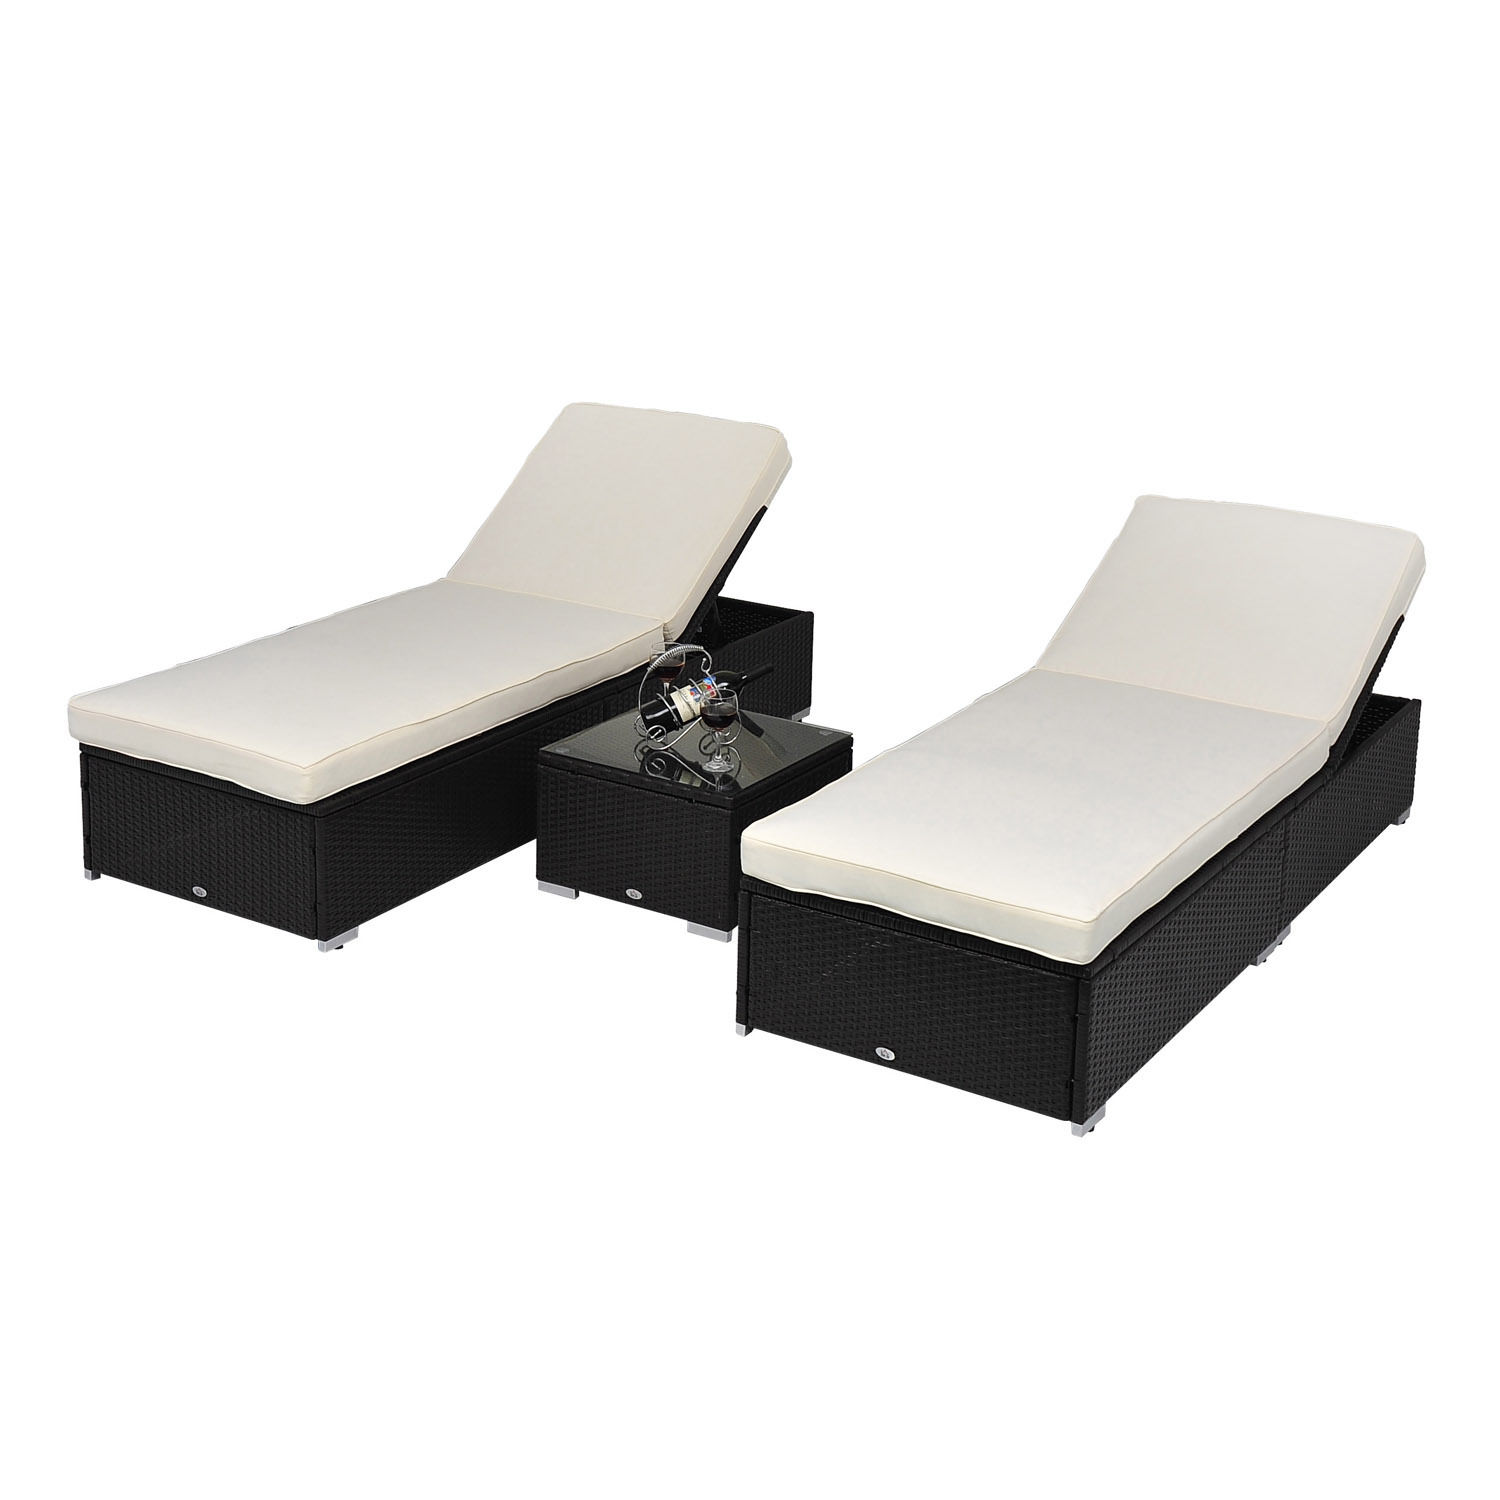 3 Pcs Outdoor Rattan Wicker Chaise Lounge Sofa Couch Patio